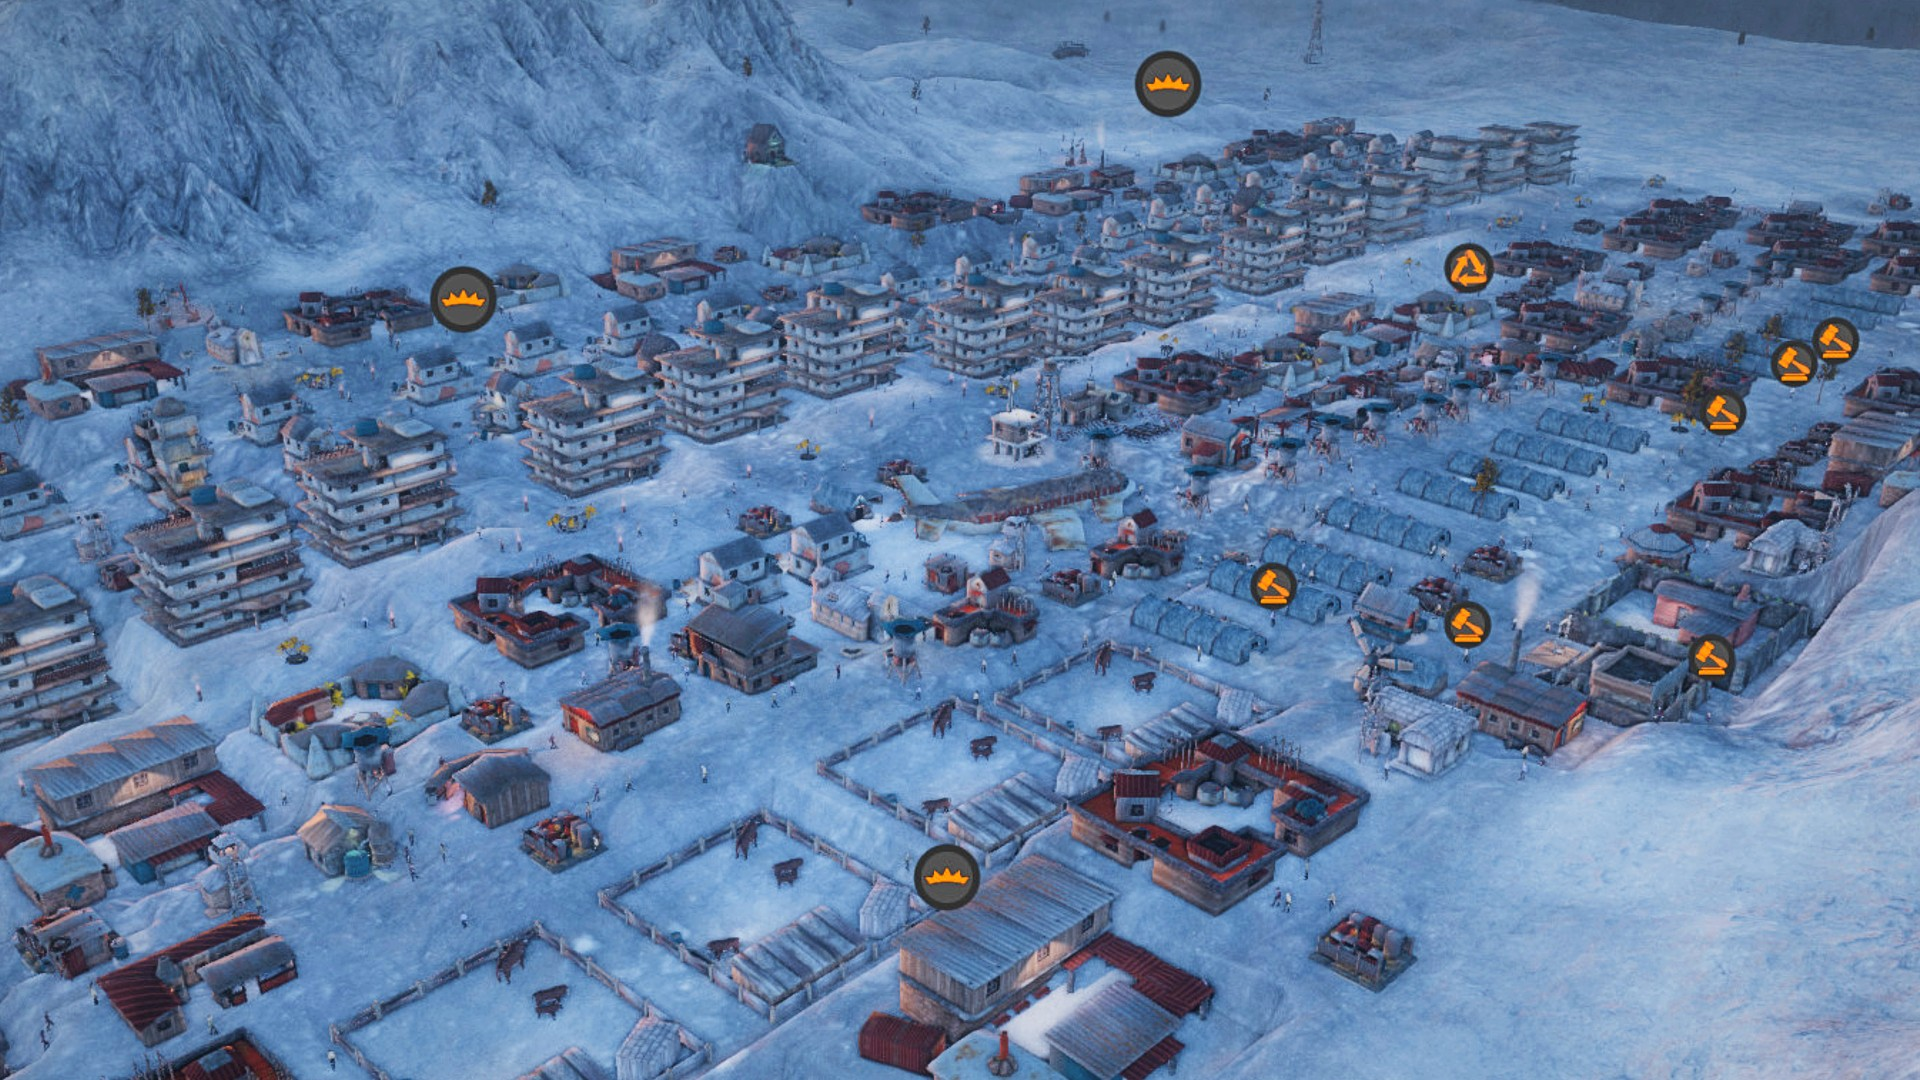 Atomic Society is a Fallout-style city builder that's just left Steam Early Access